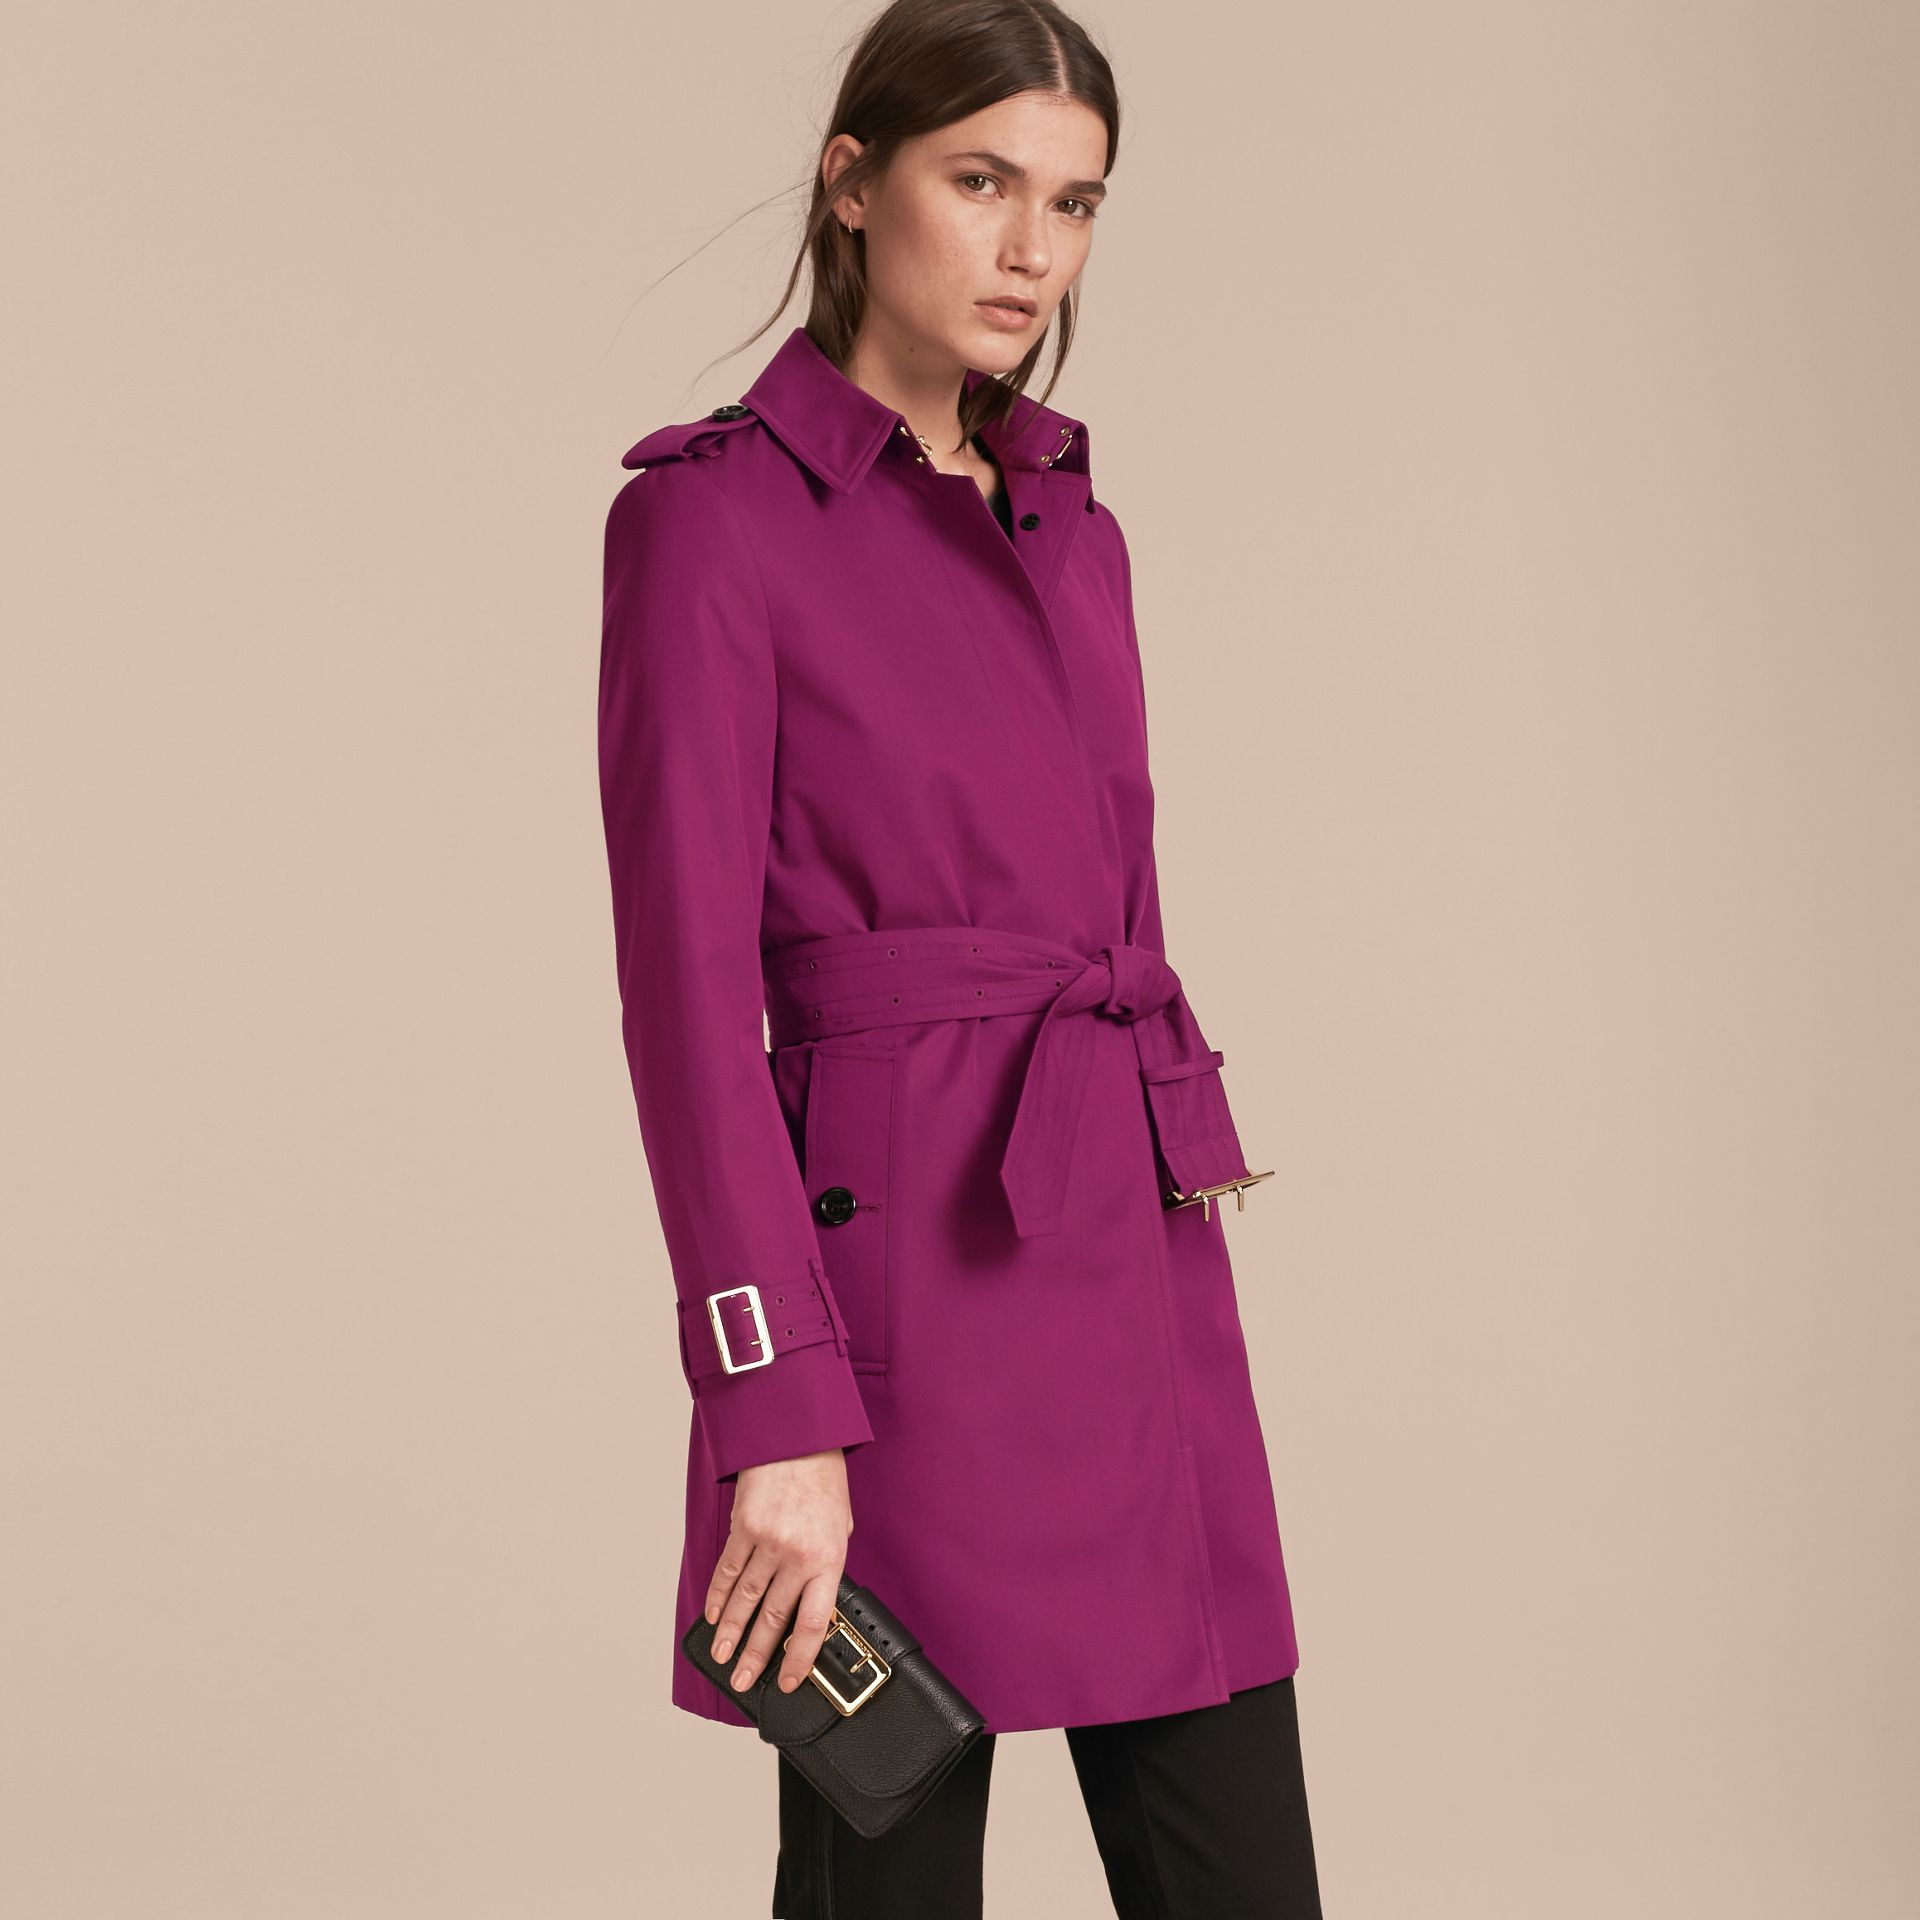 Magenta pink Single-breasted Trench Coat with Metal Buckle Detail Magenta Pink - gallery image 7